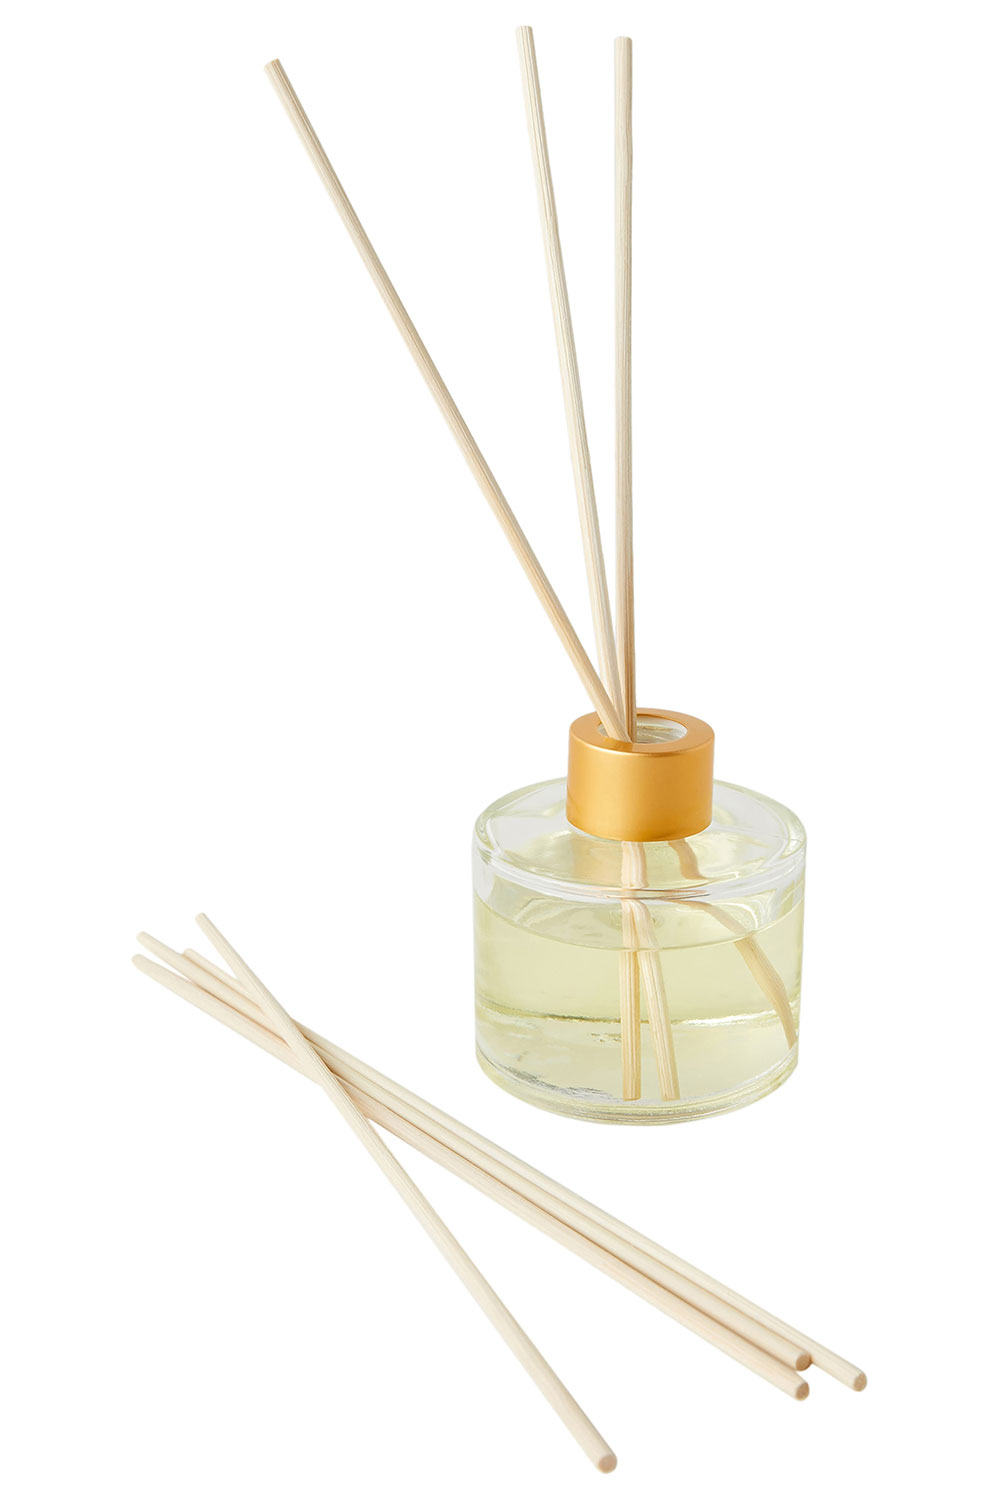 Anthropologie Home Spring's Eden Reed Diffuser